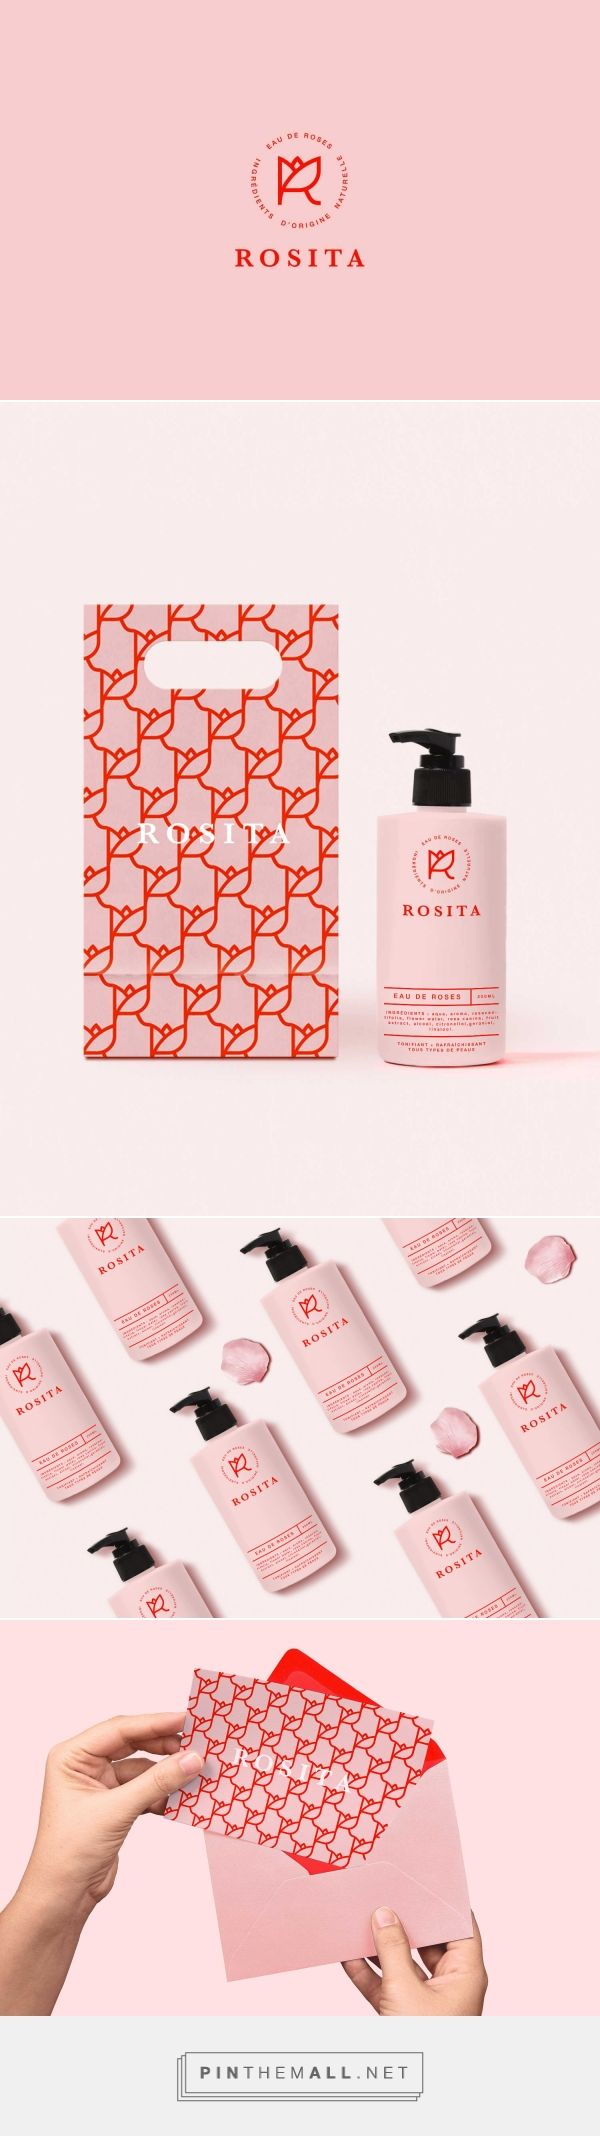 Rosita is a fictitious brand of rose water. Designed by JOAM #packaging